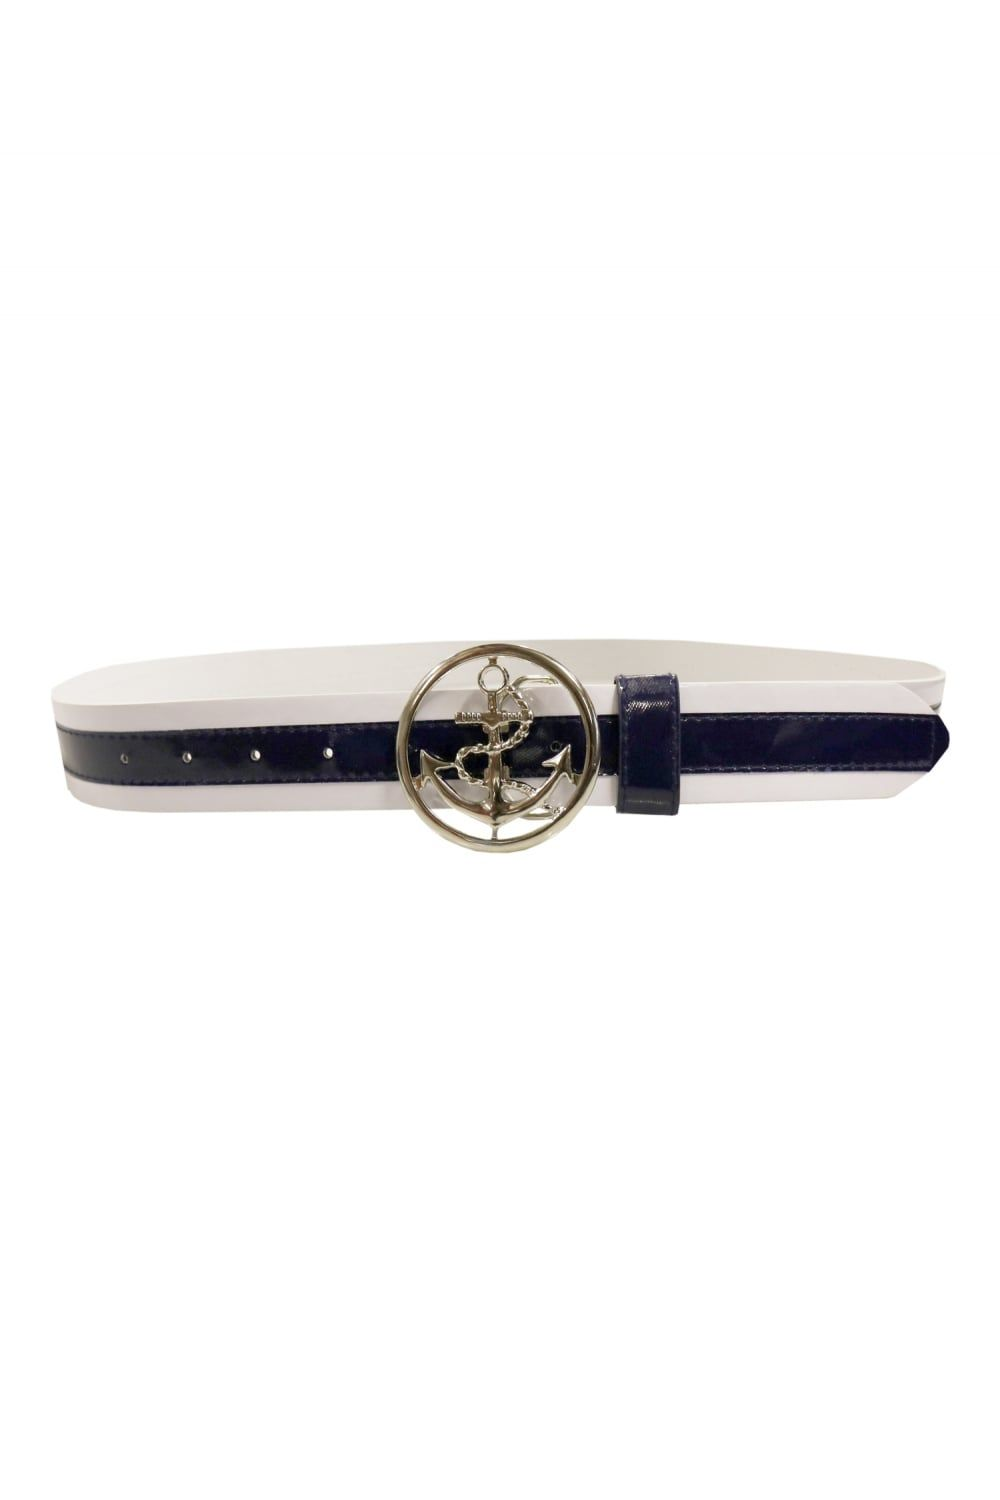 skipper-belt-p1629-139972_zoom